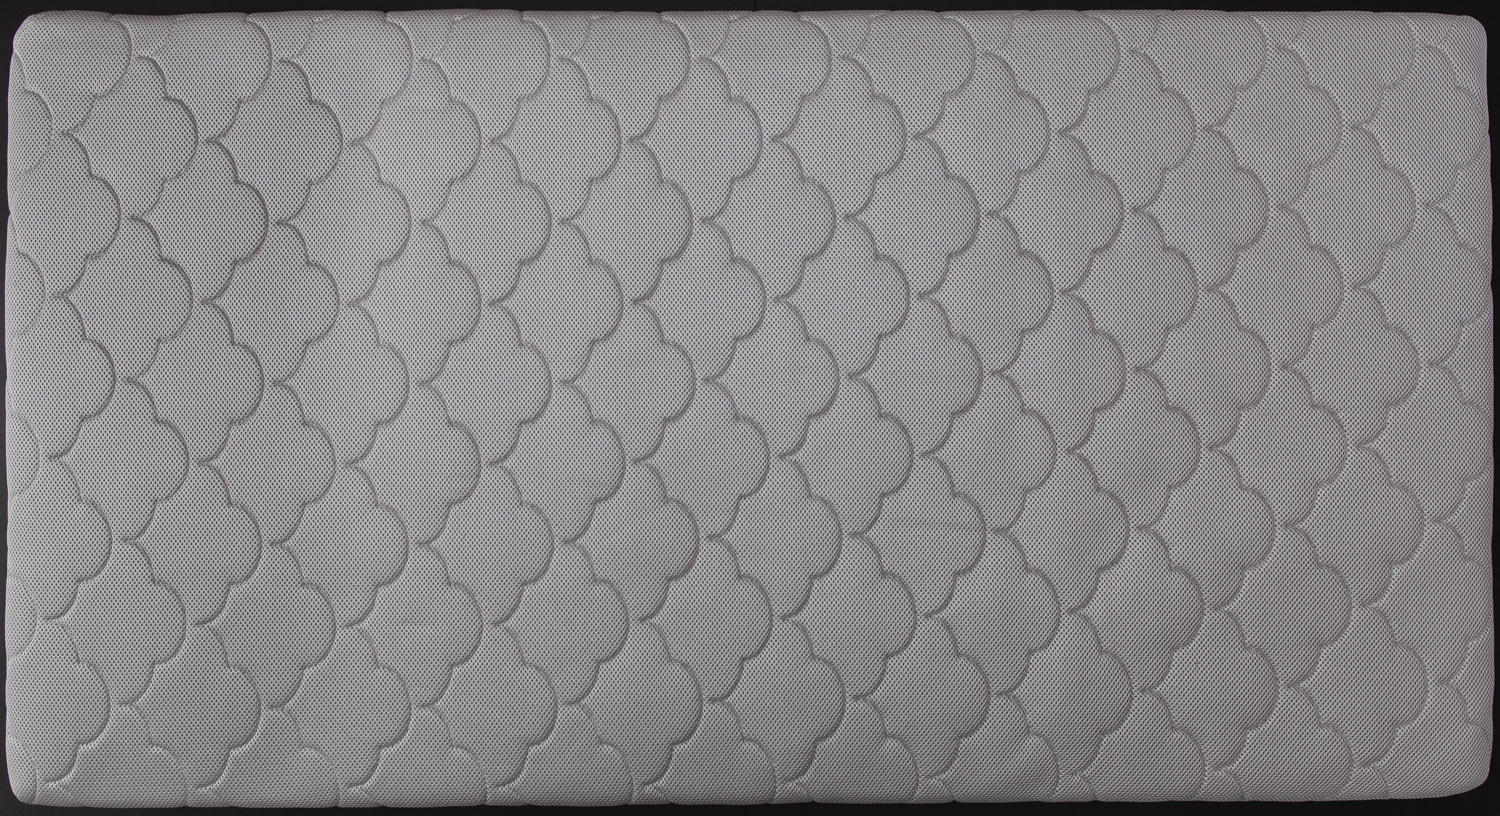 Florist in Portland Oregon recommends infant crib mattress made by Newton Baby